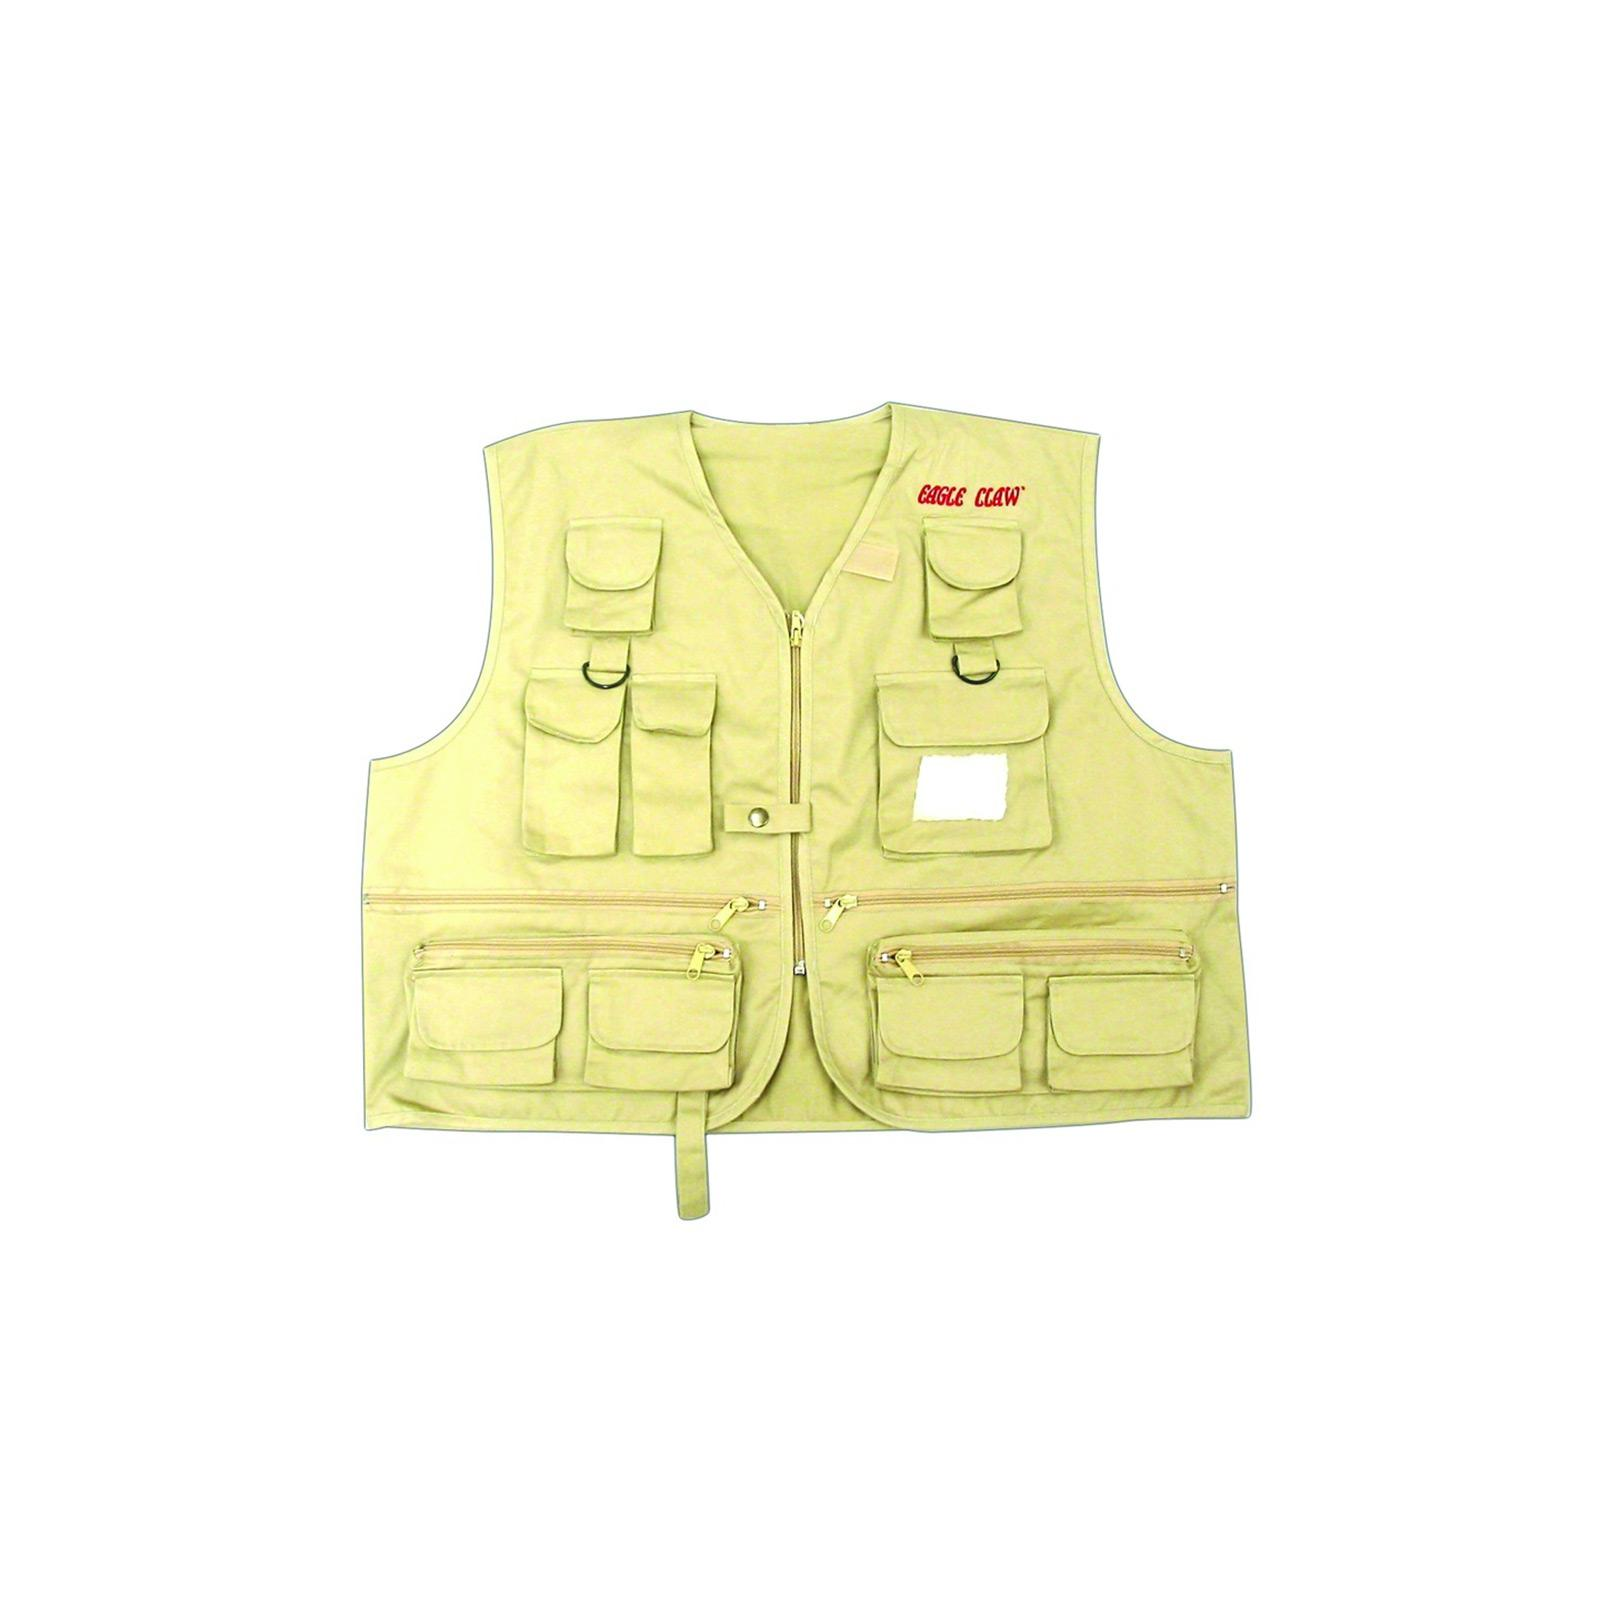 Eagle Claw Eagle Claw Fishing Vest Adult Xxlg FVA-2XL by Eagle Claw